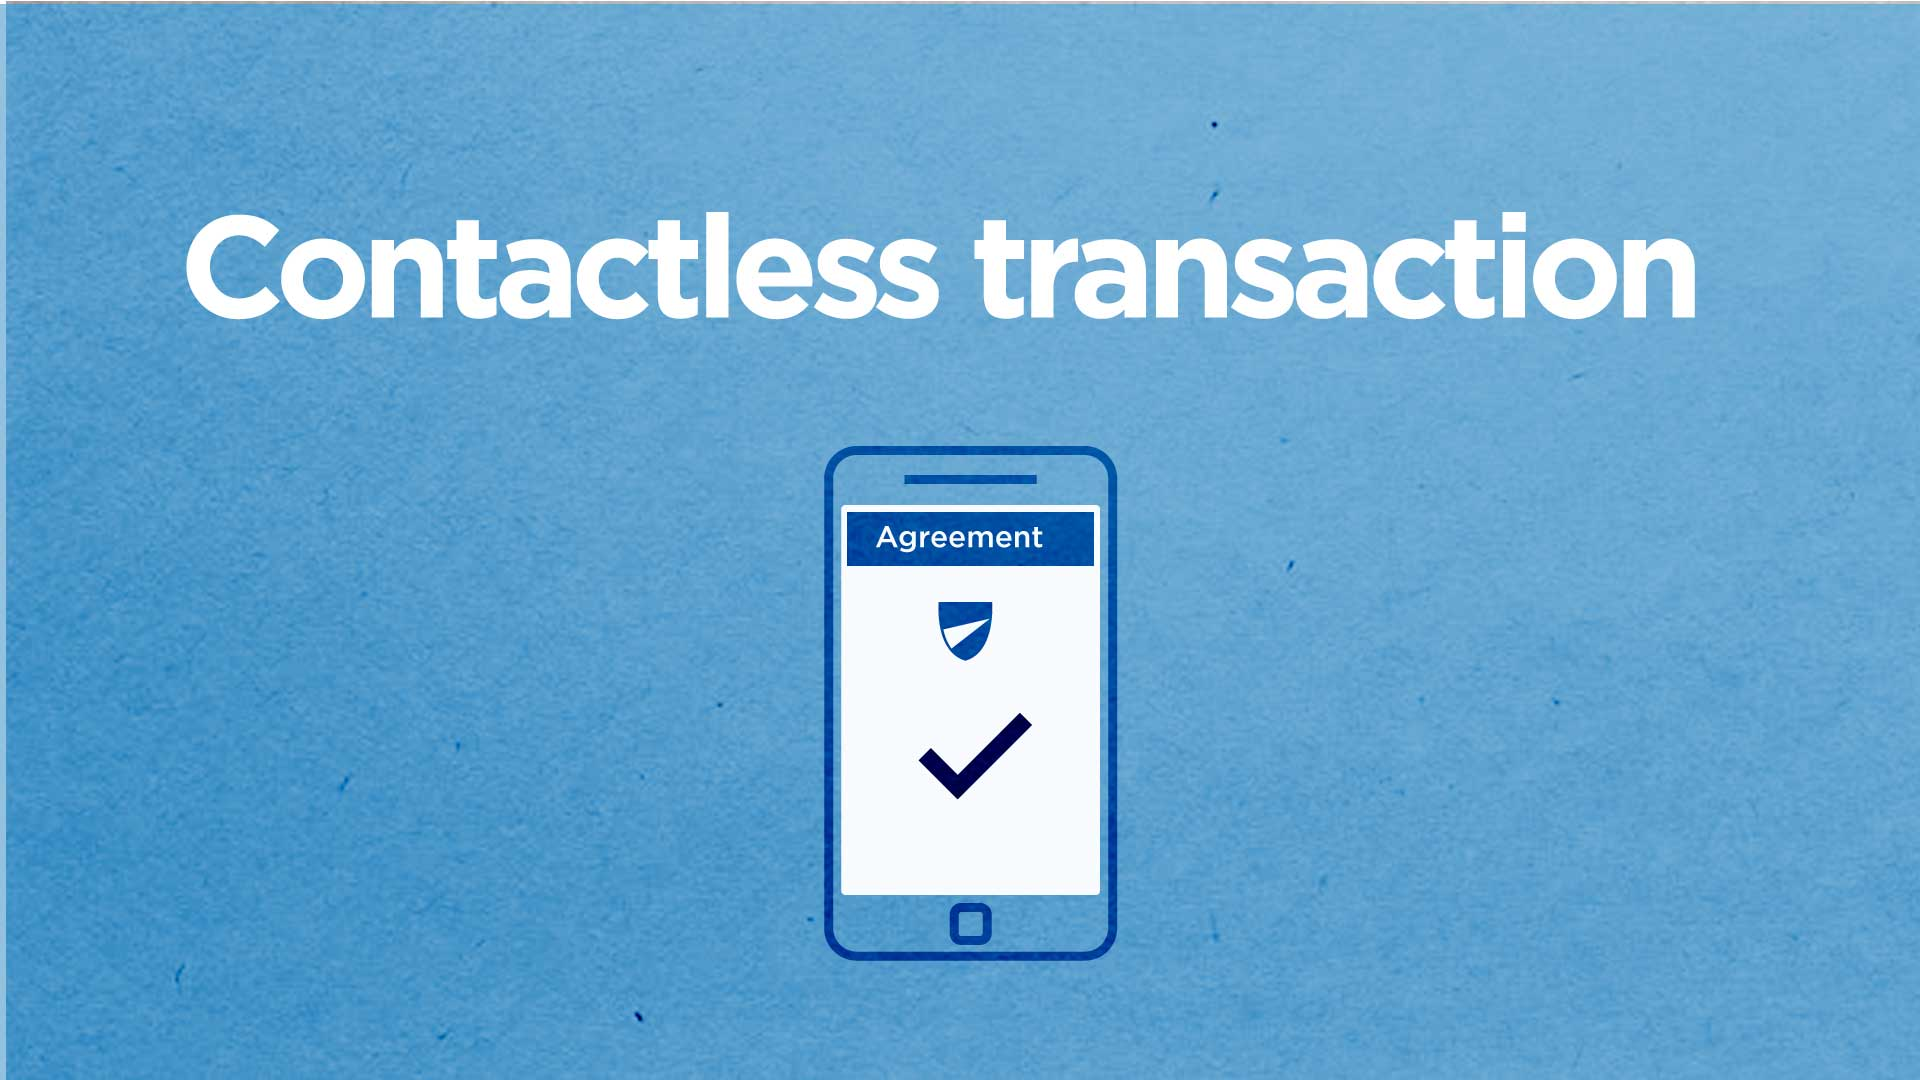 Contactless transaction